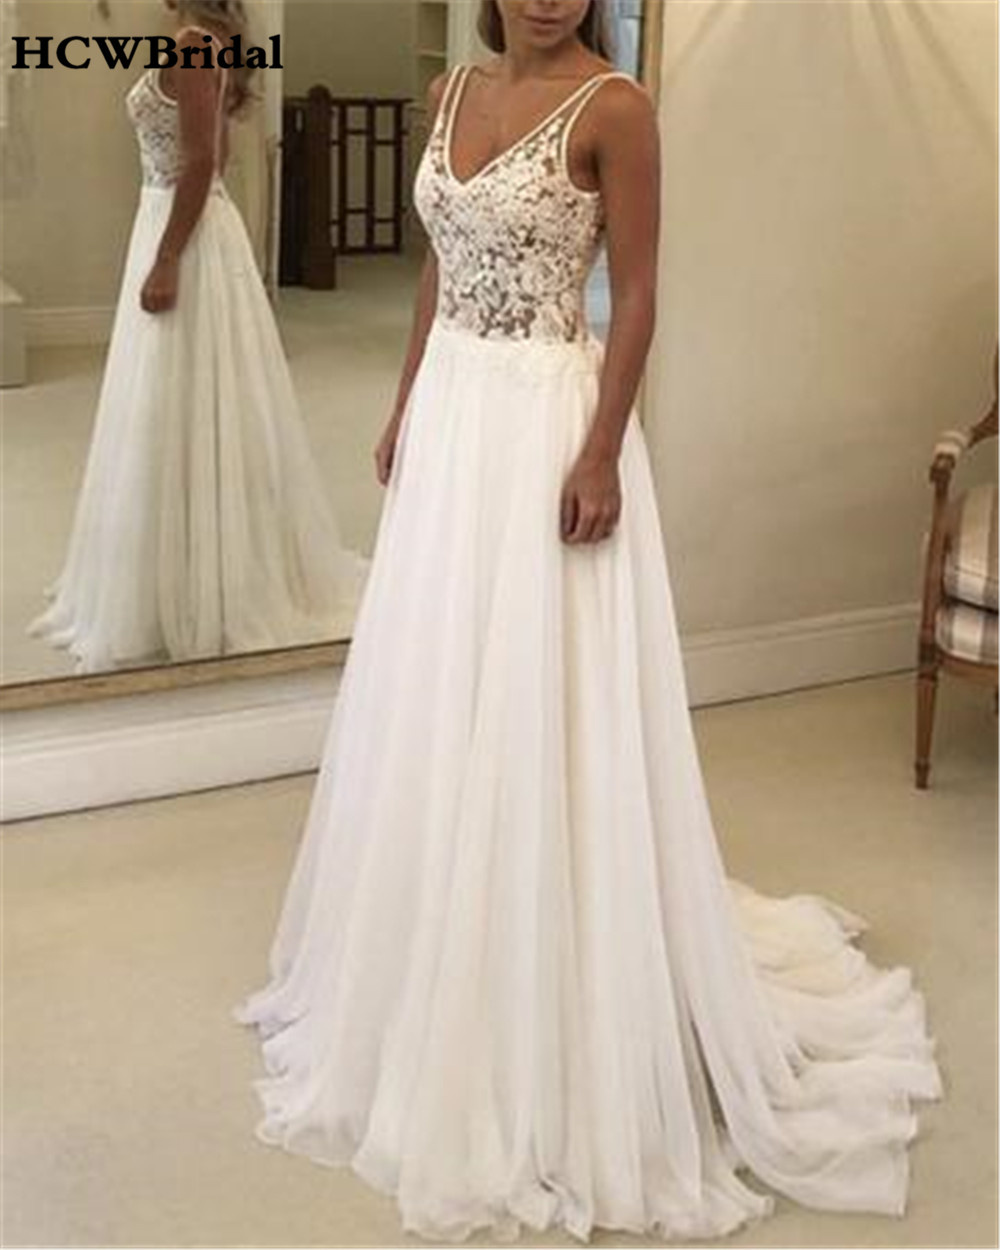 Romantic Sweetheart Beach Wedding Dress High Quality: Backless A Line Chiffon Lace Wedding Dresses 2019 High